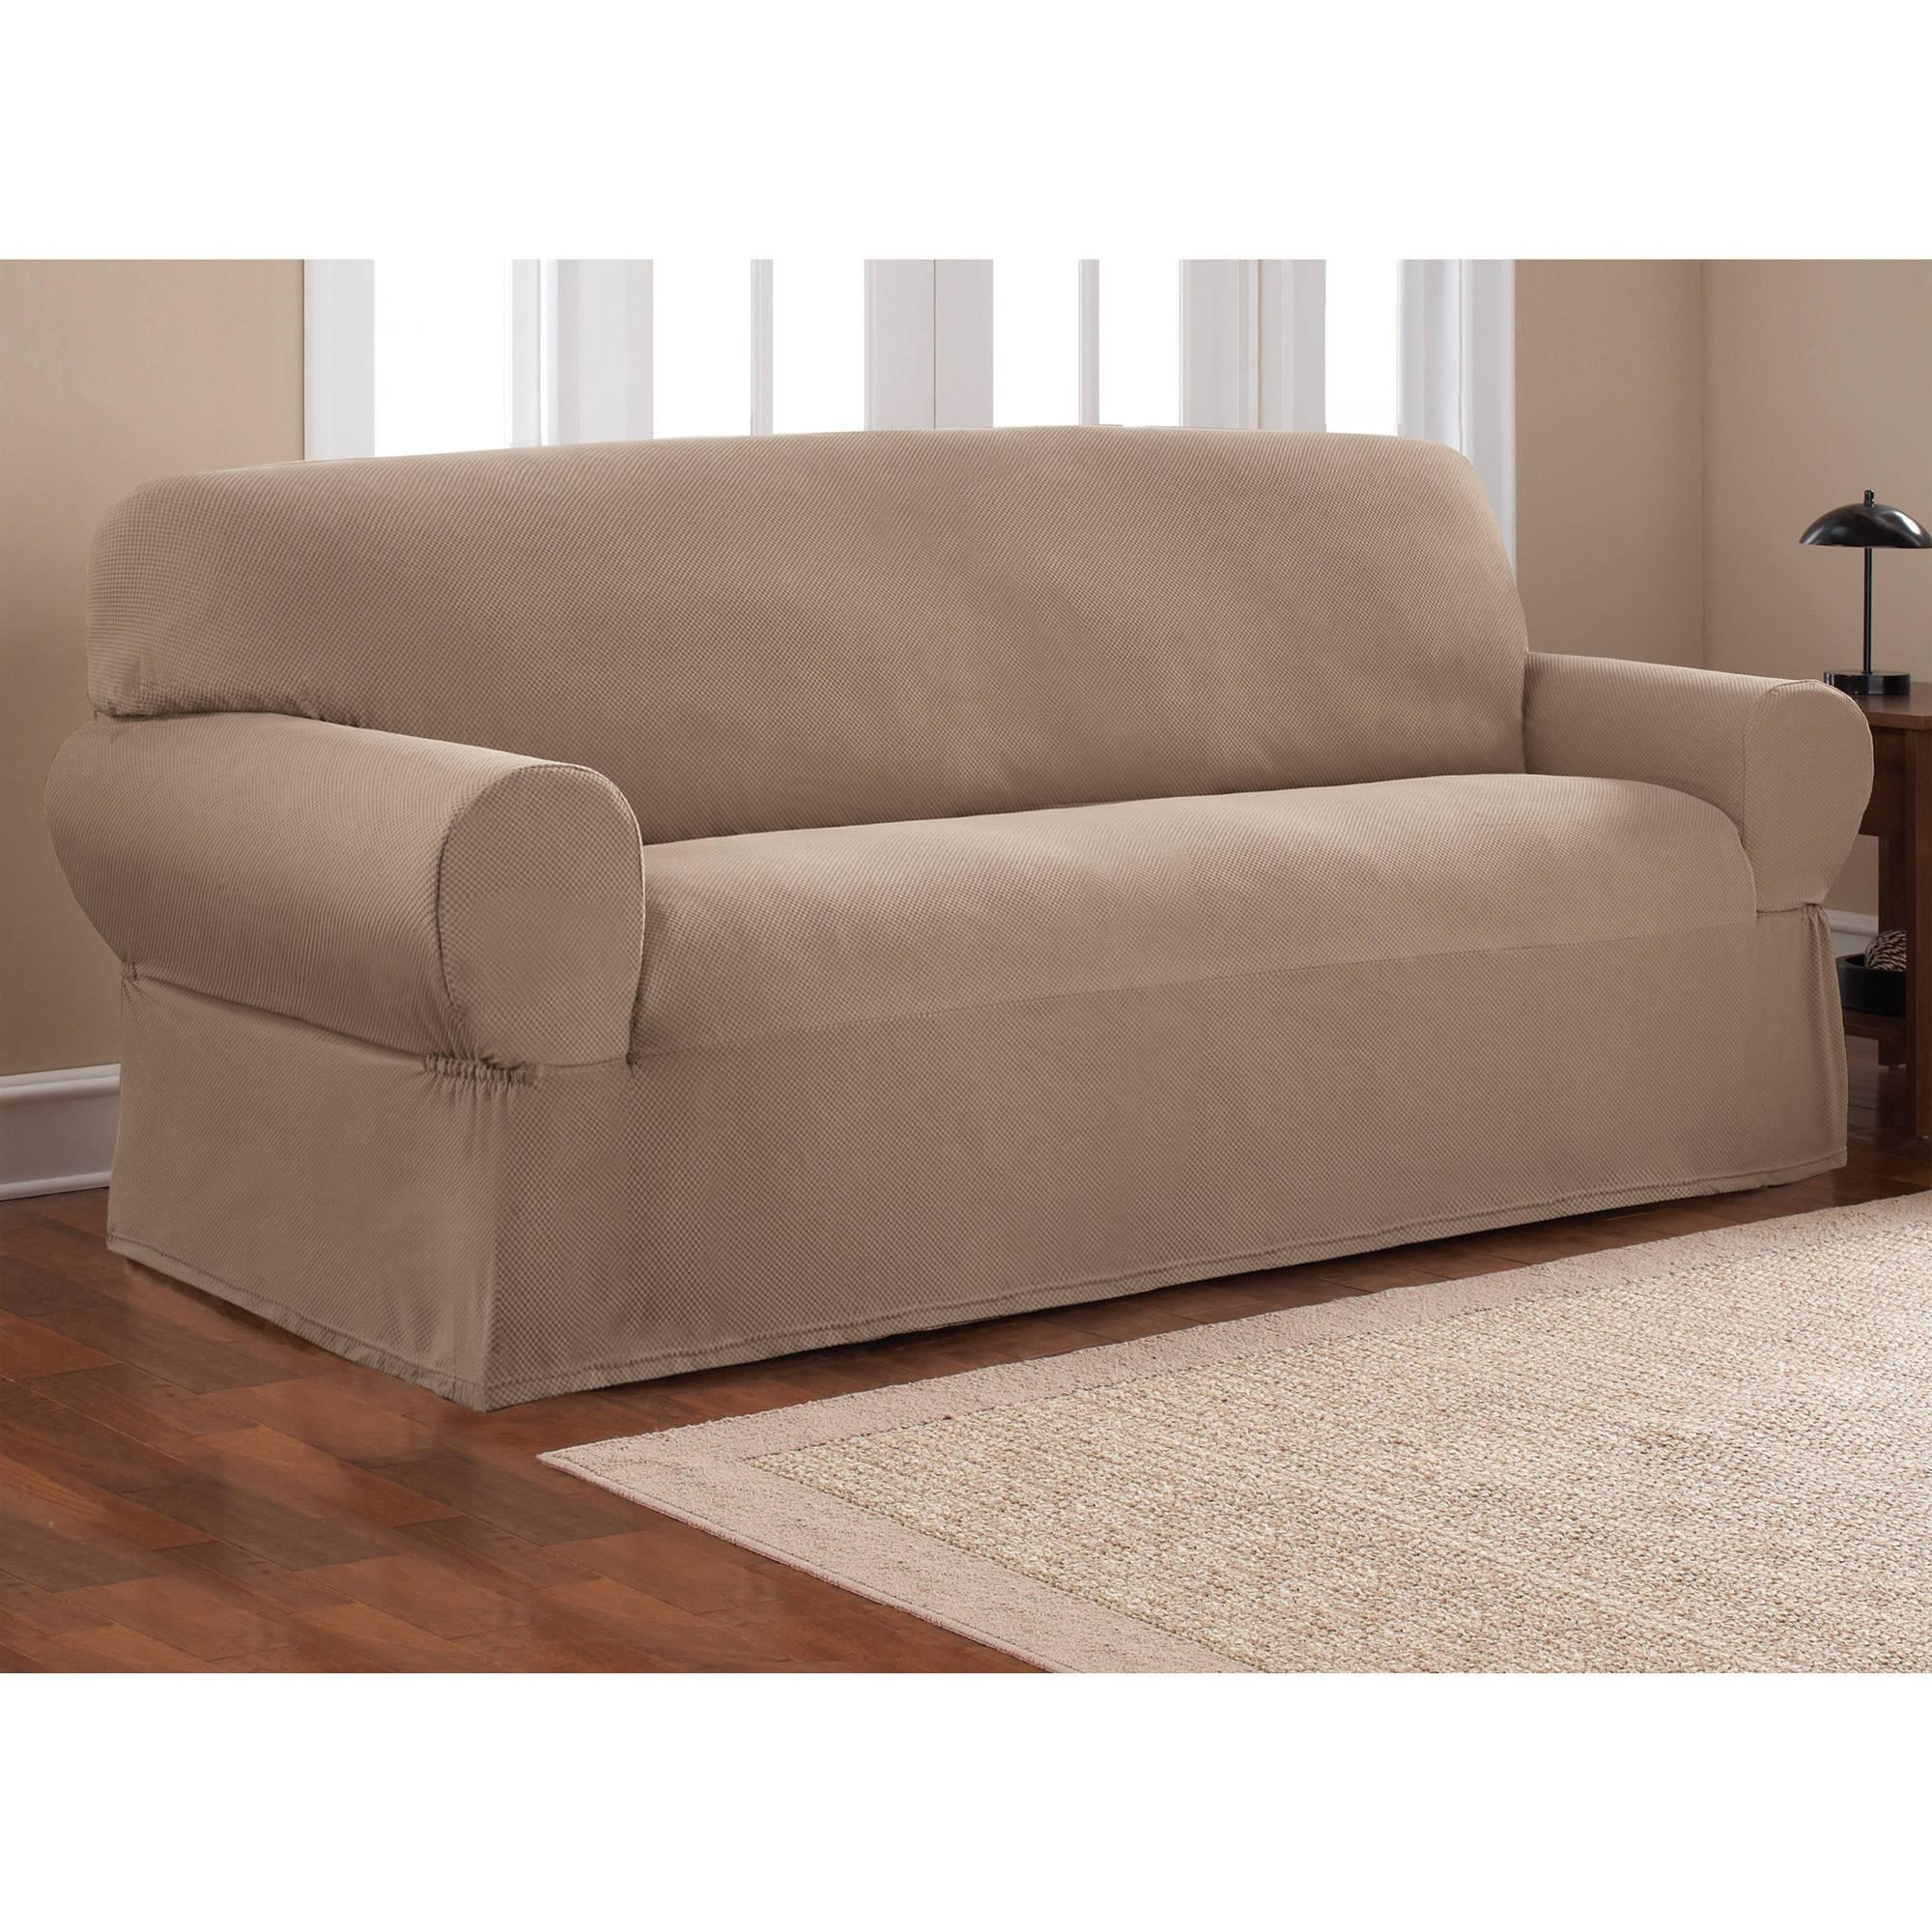 Mainstays 1 Piece Stretch Fabric Sofa Slipcover – Walmart Intended For Canvas Sofa Slipcovers (Image 12 of 20)